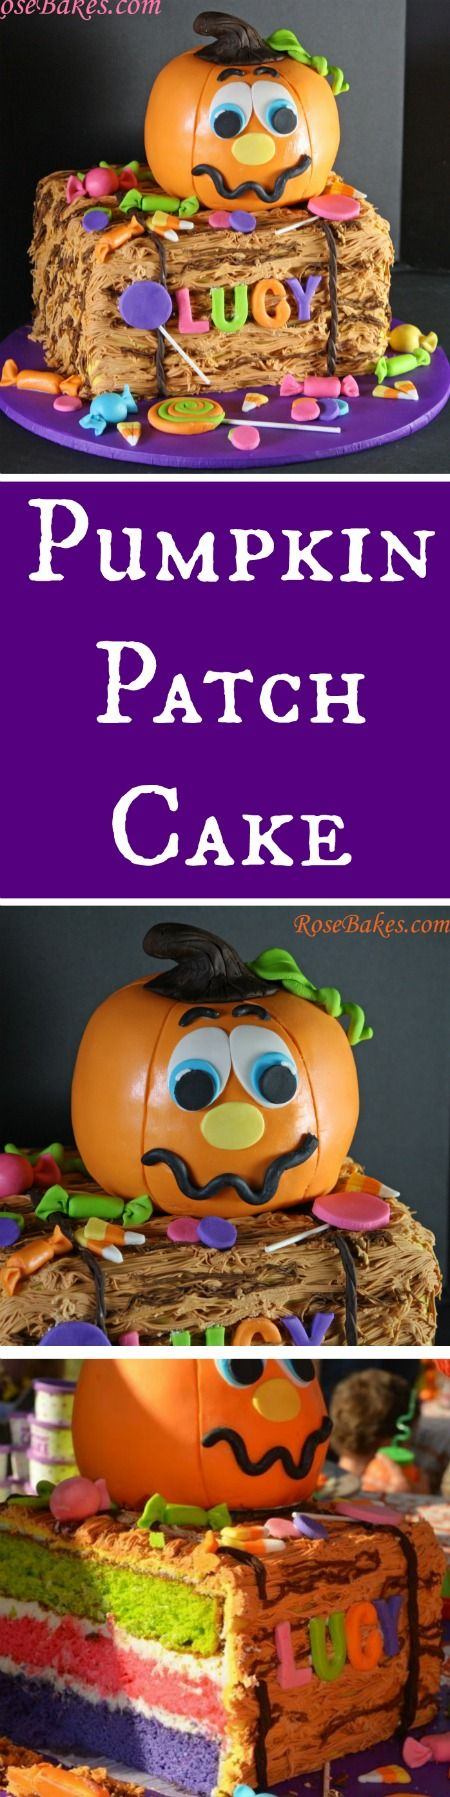 Pumpkin Patch Cake with a Bale of Hay and Candy by RoseBakes